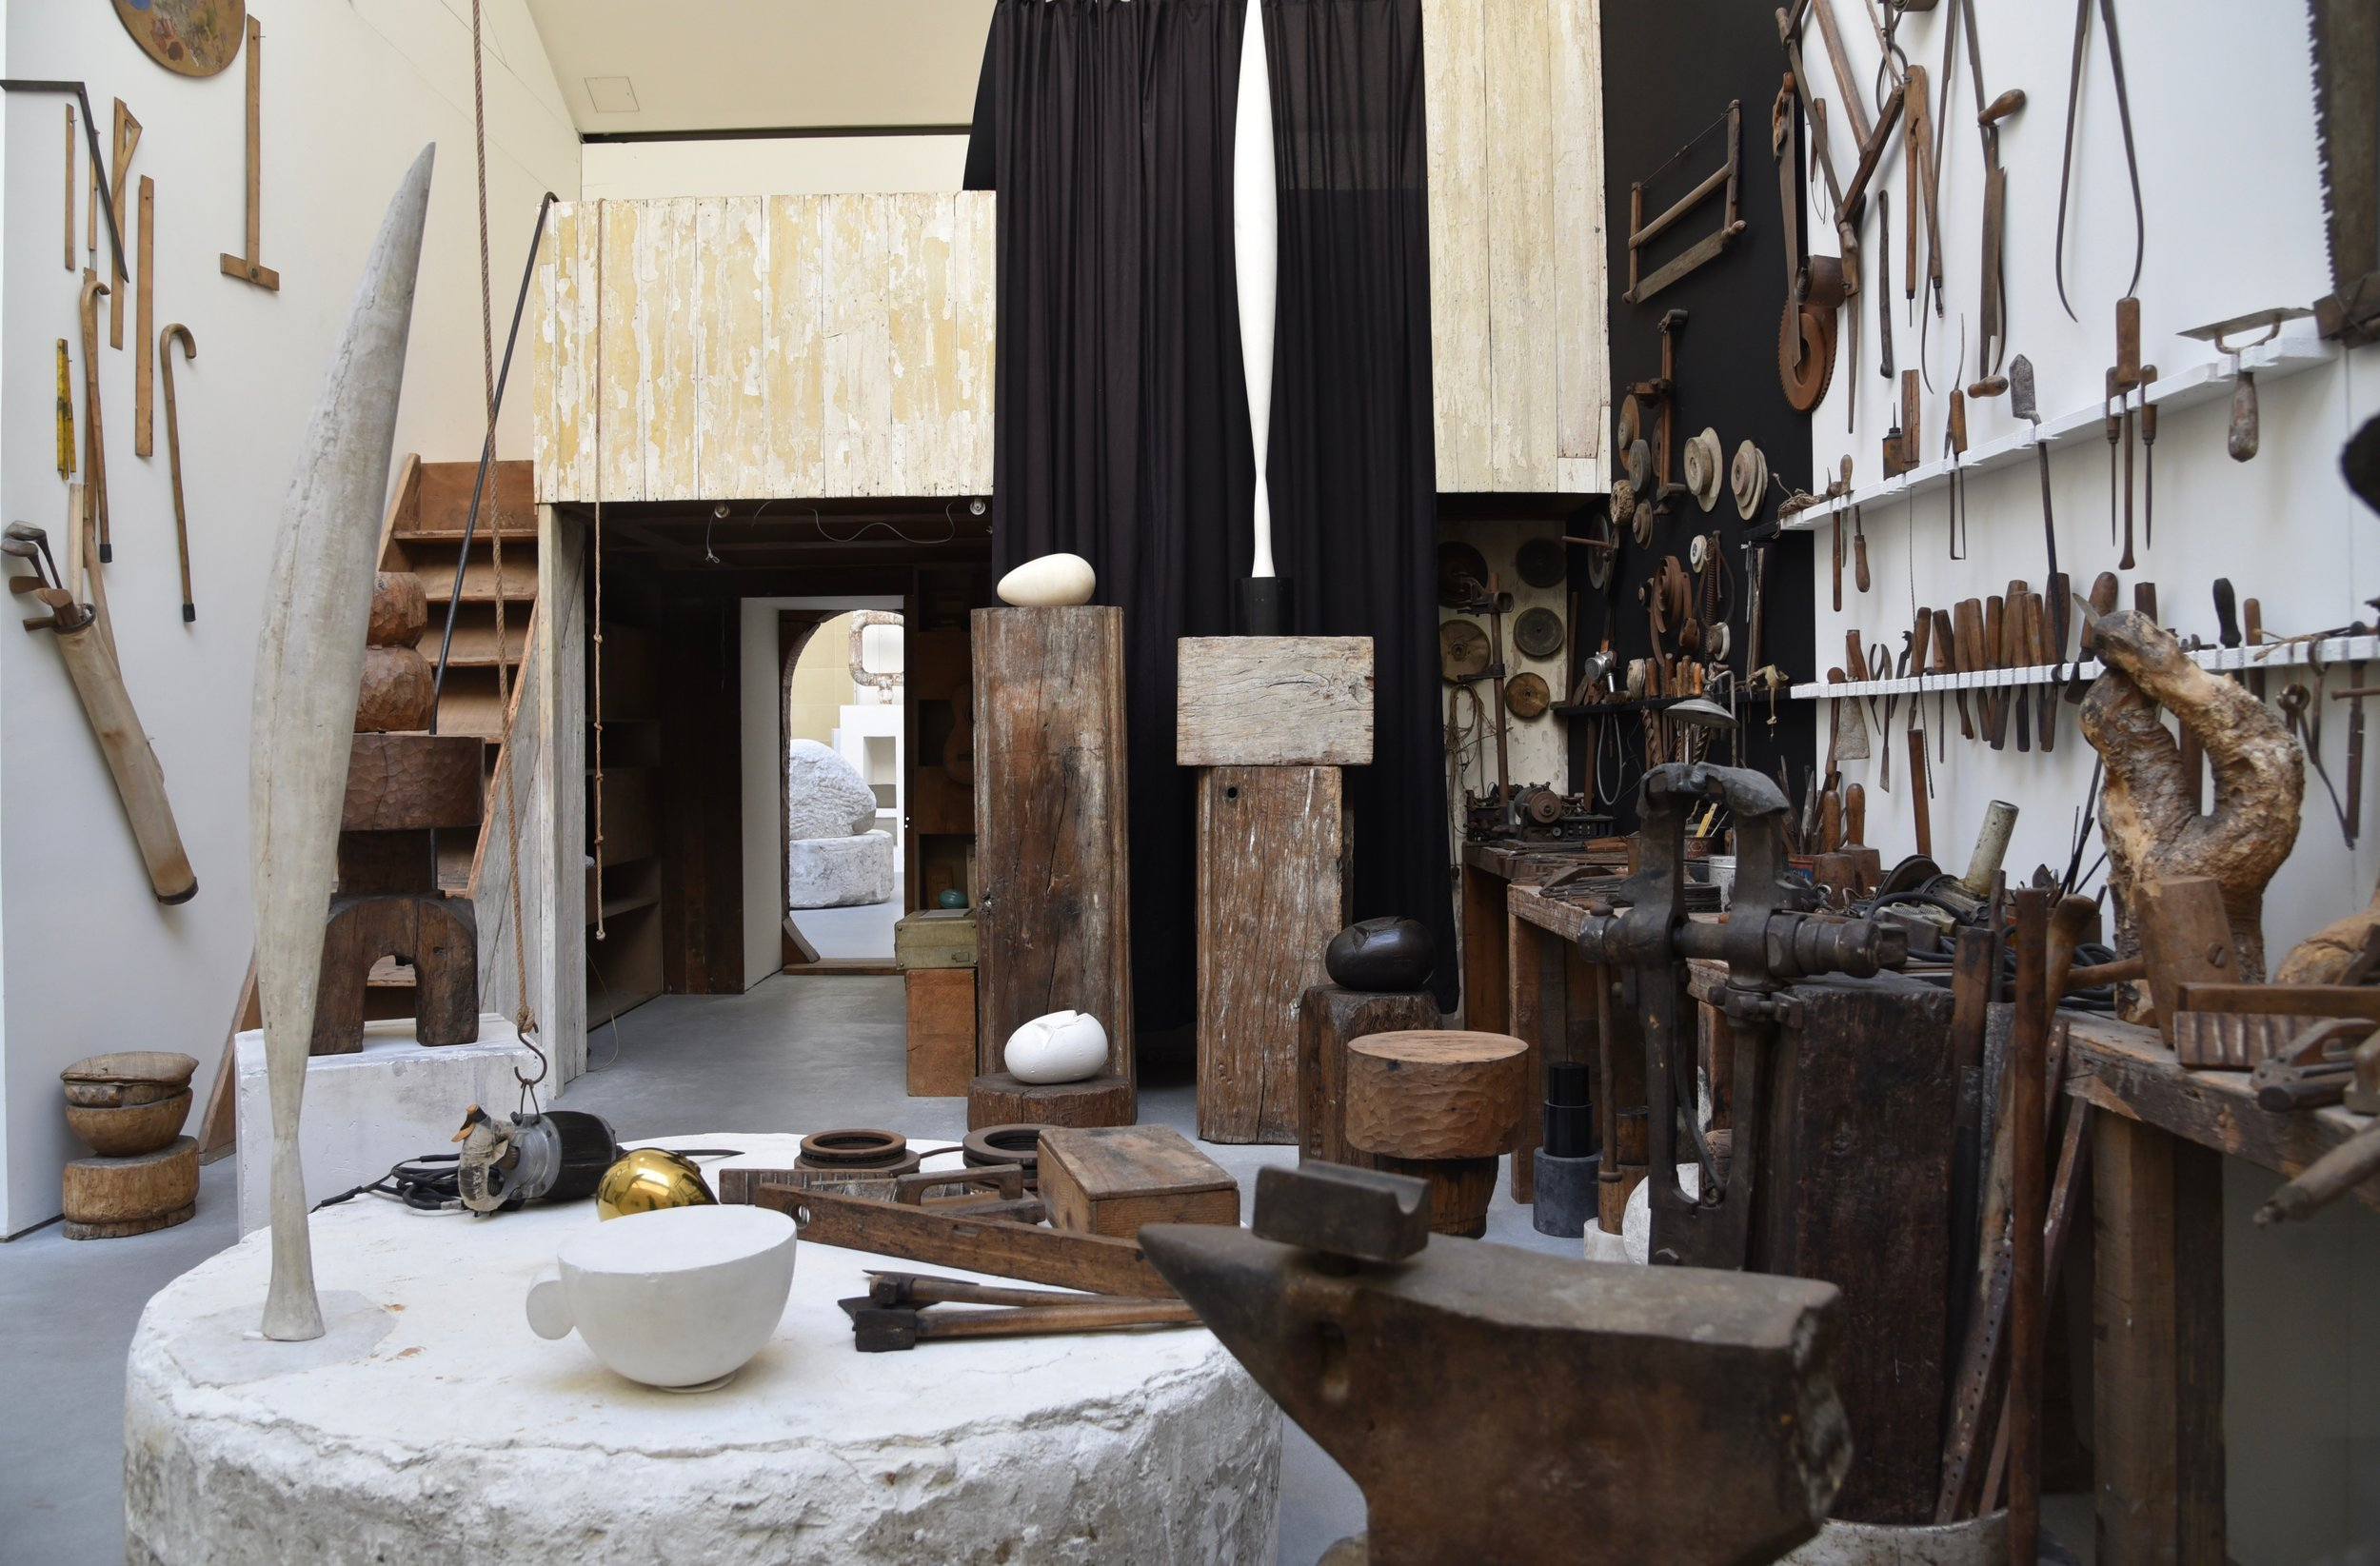 brancusi's Work area, recreated from his own photographs